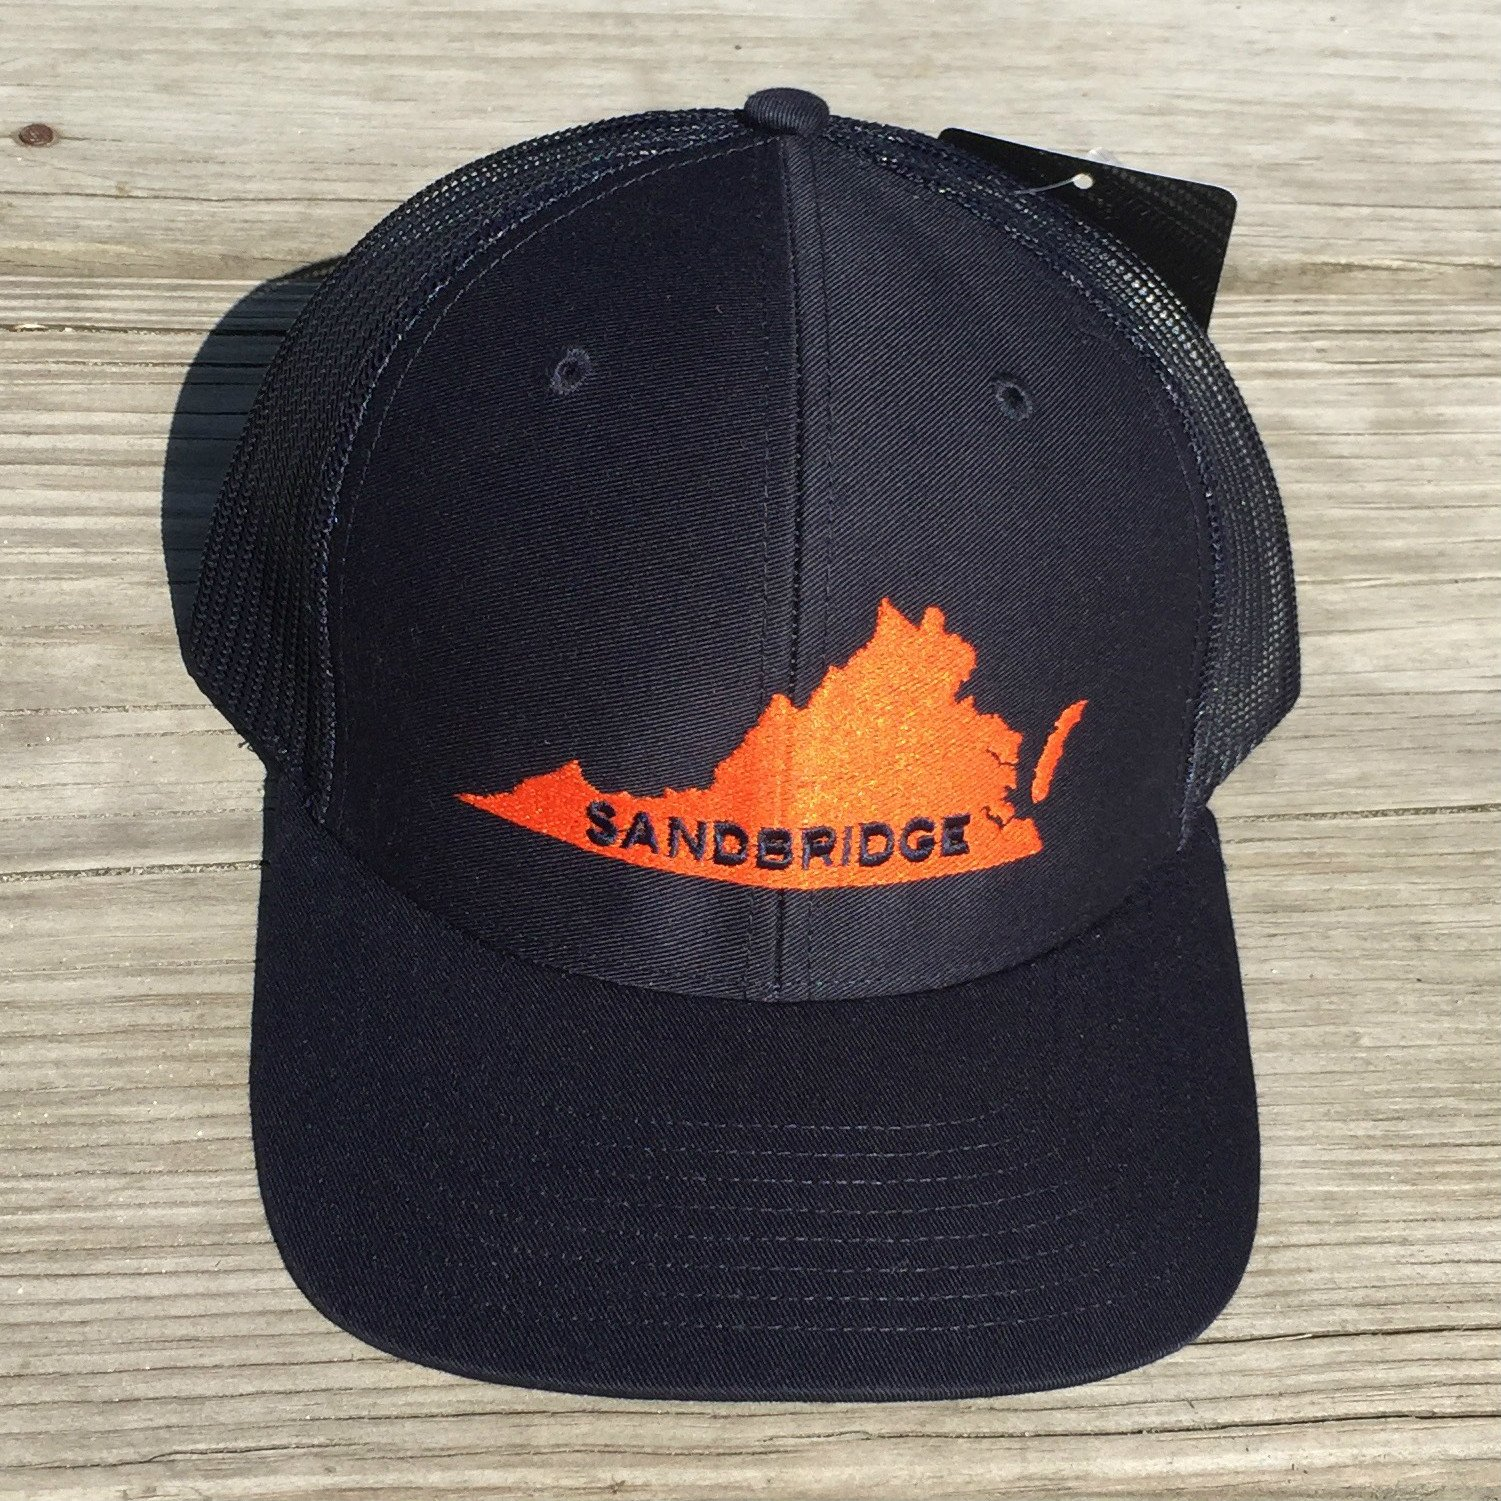 Sandbridge Trucker Hat